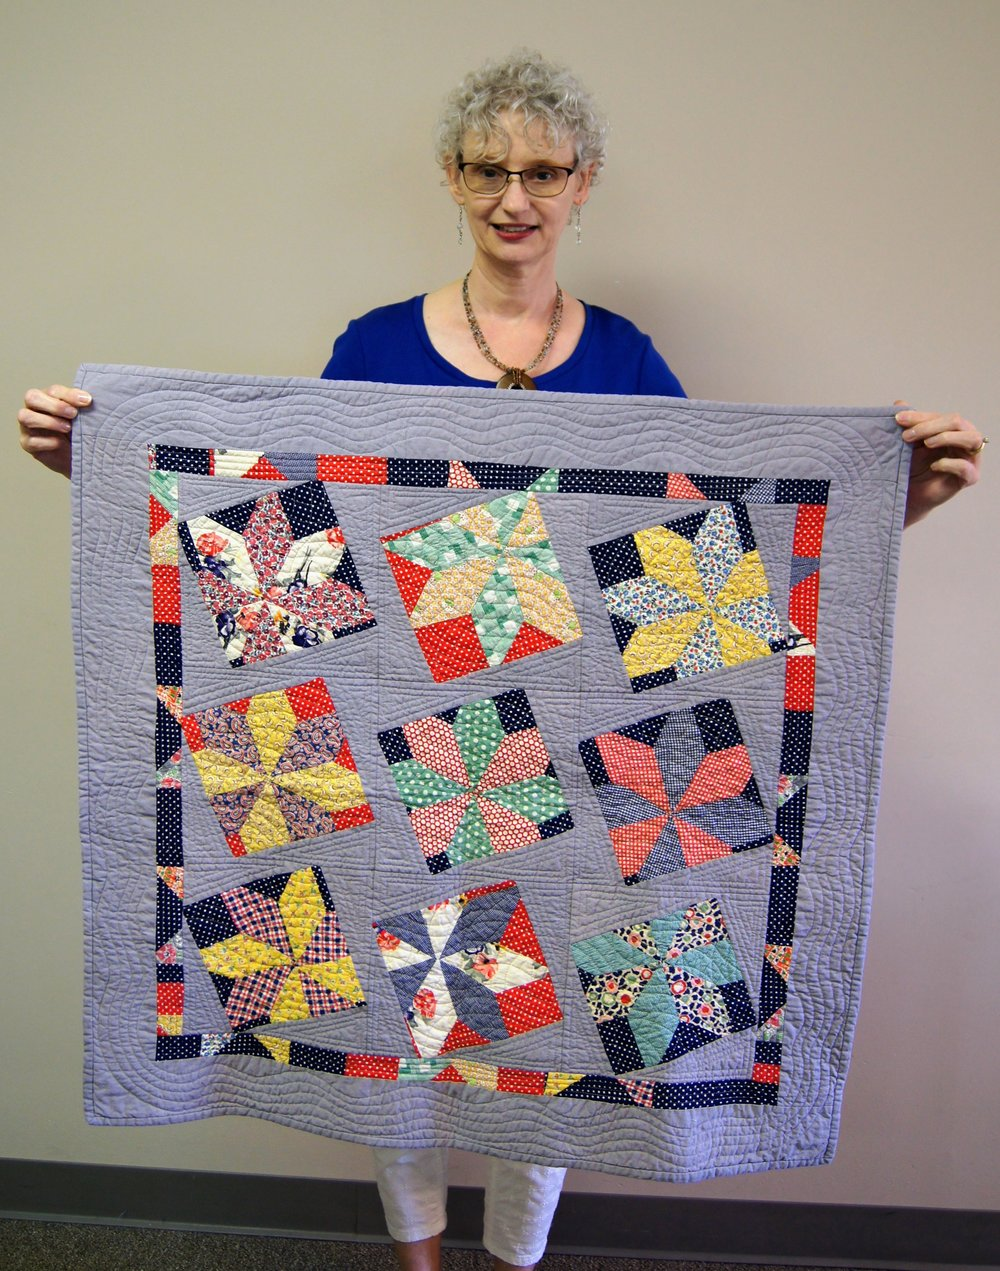 Denise Ohlman and the quilt she made in Mary Kerr's workshop